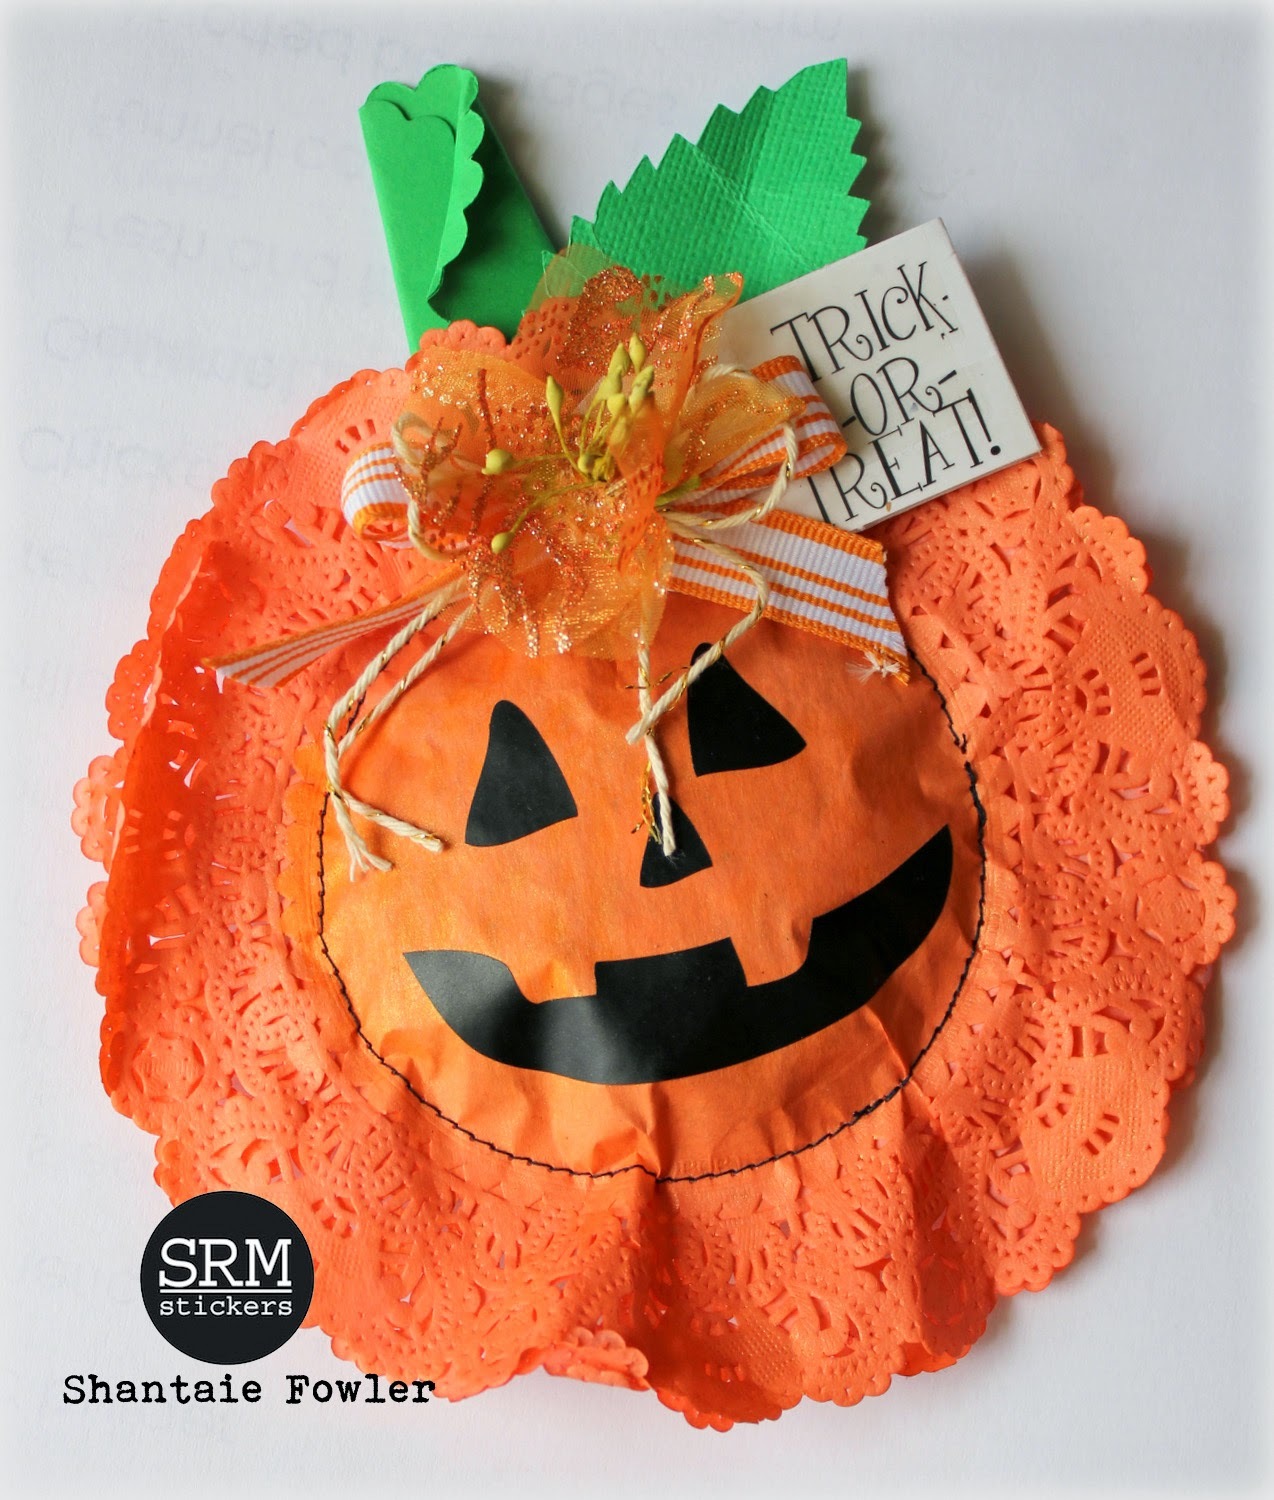 SRM Stickers - Halloween Doily Tutorial Treat by Shantaie - #srmstickers #stickers #halloween #doilies #punchedpieces